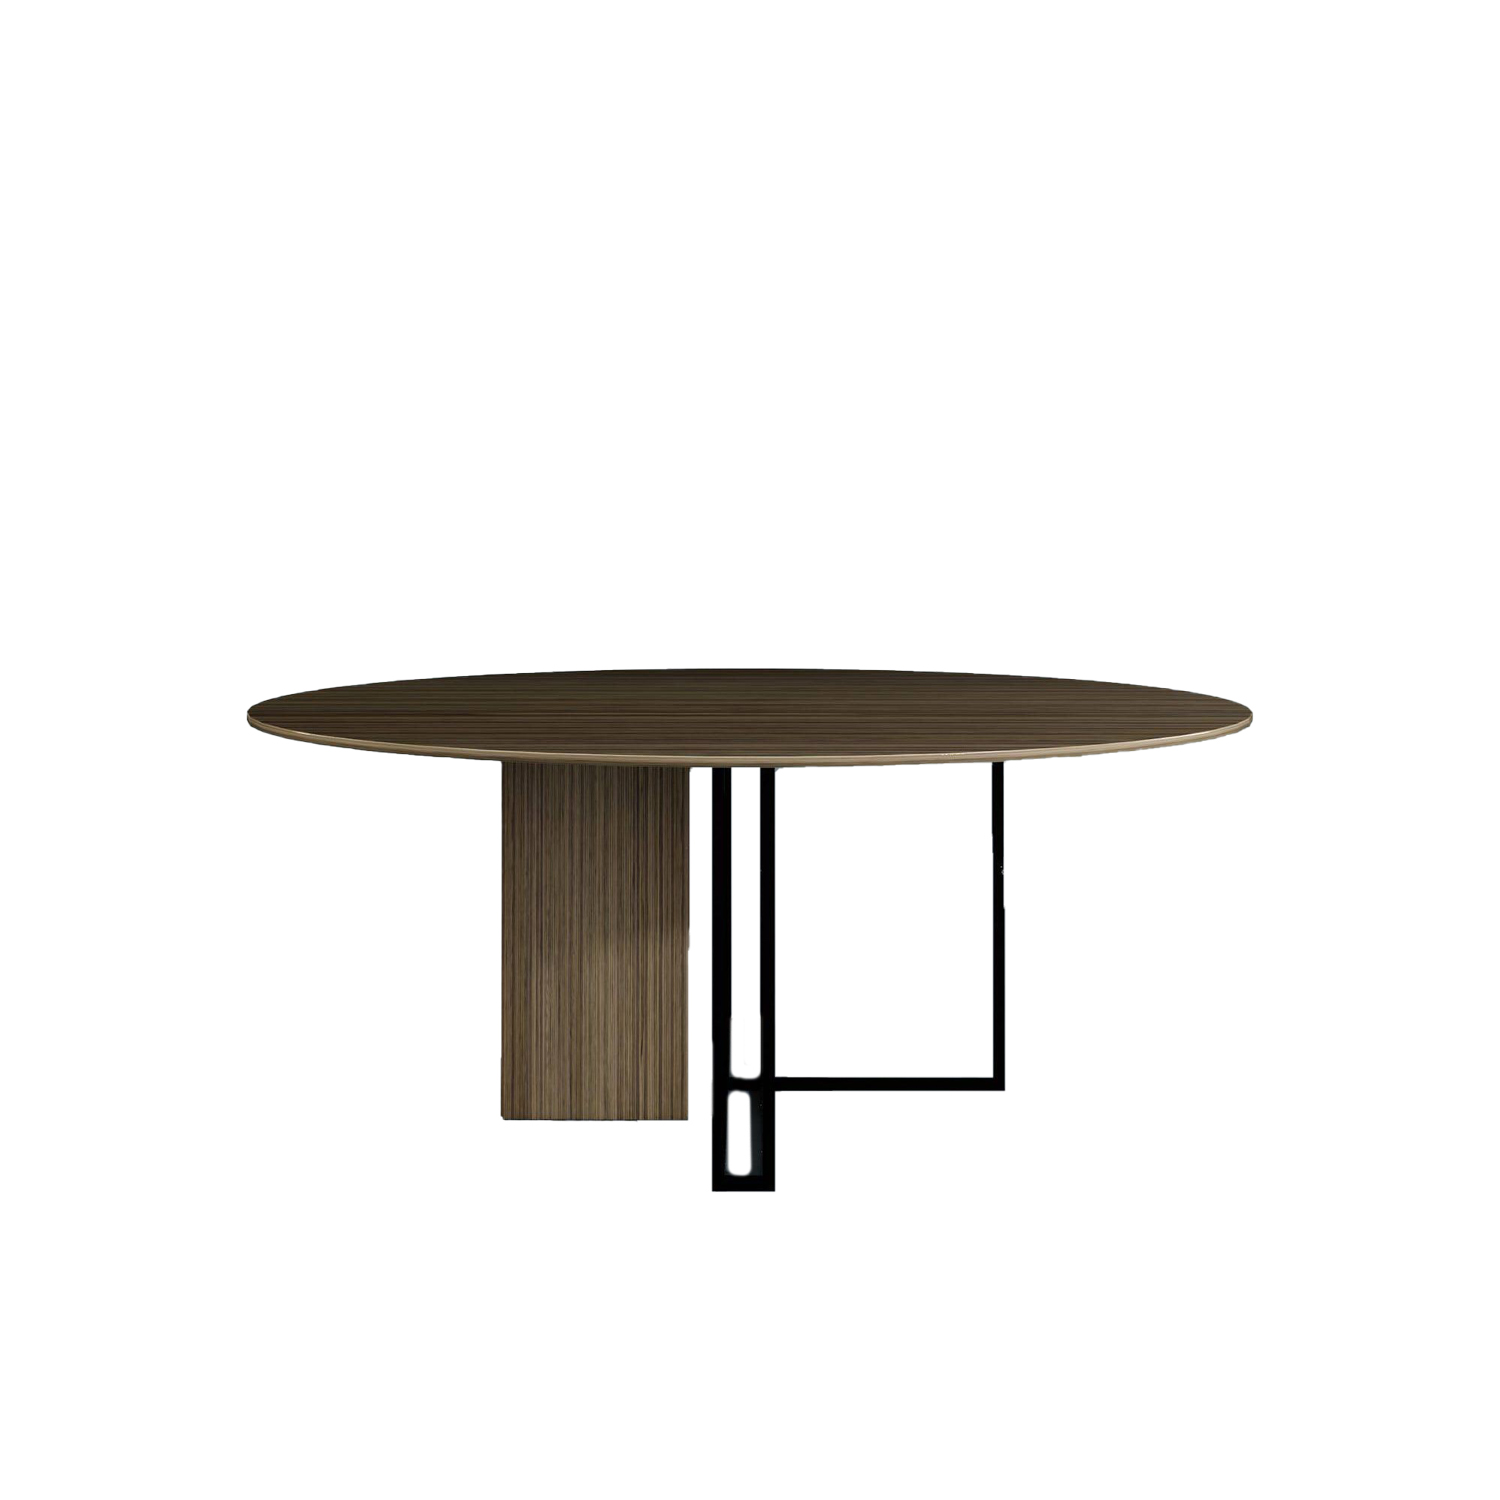 Plinto Round Large Dining Table - Dining tables with metal base with plinth. Tops in different models and dimensions. Finishes for metal base - black varnishes - bronzed brass Finishes for plinth - wood veneer - matt or glossy lacquer - marble Finishes for tops - wood veneer - matt or glossy lacquer - marble | Matter of Stuff